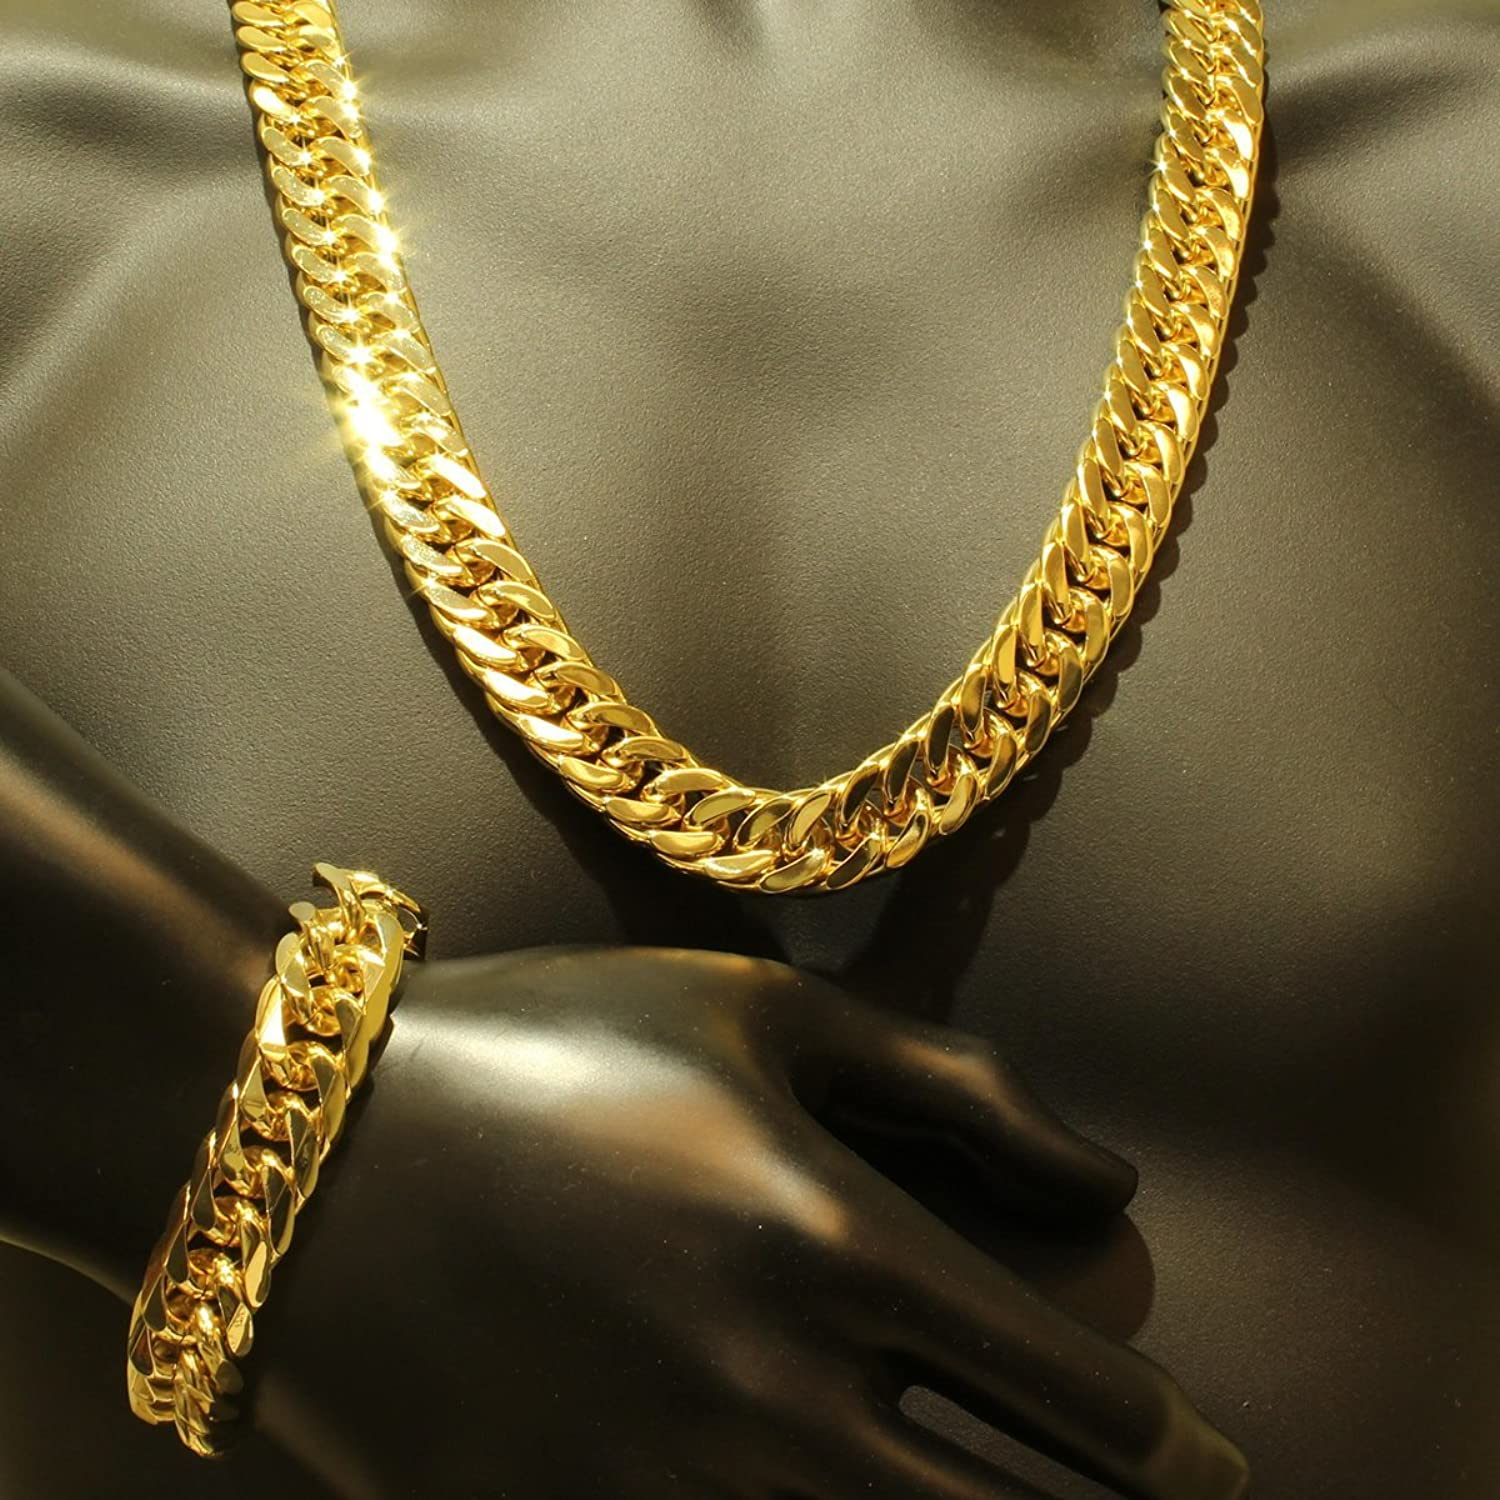 cuban out curb jew mens paved chain clear rhinestones s color iced trendsmax hiphop men necklace gold jewelry miami